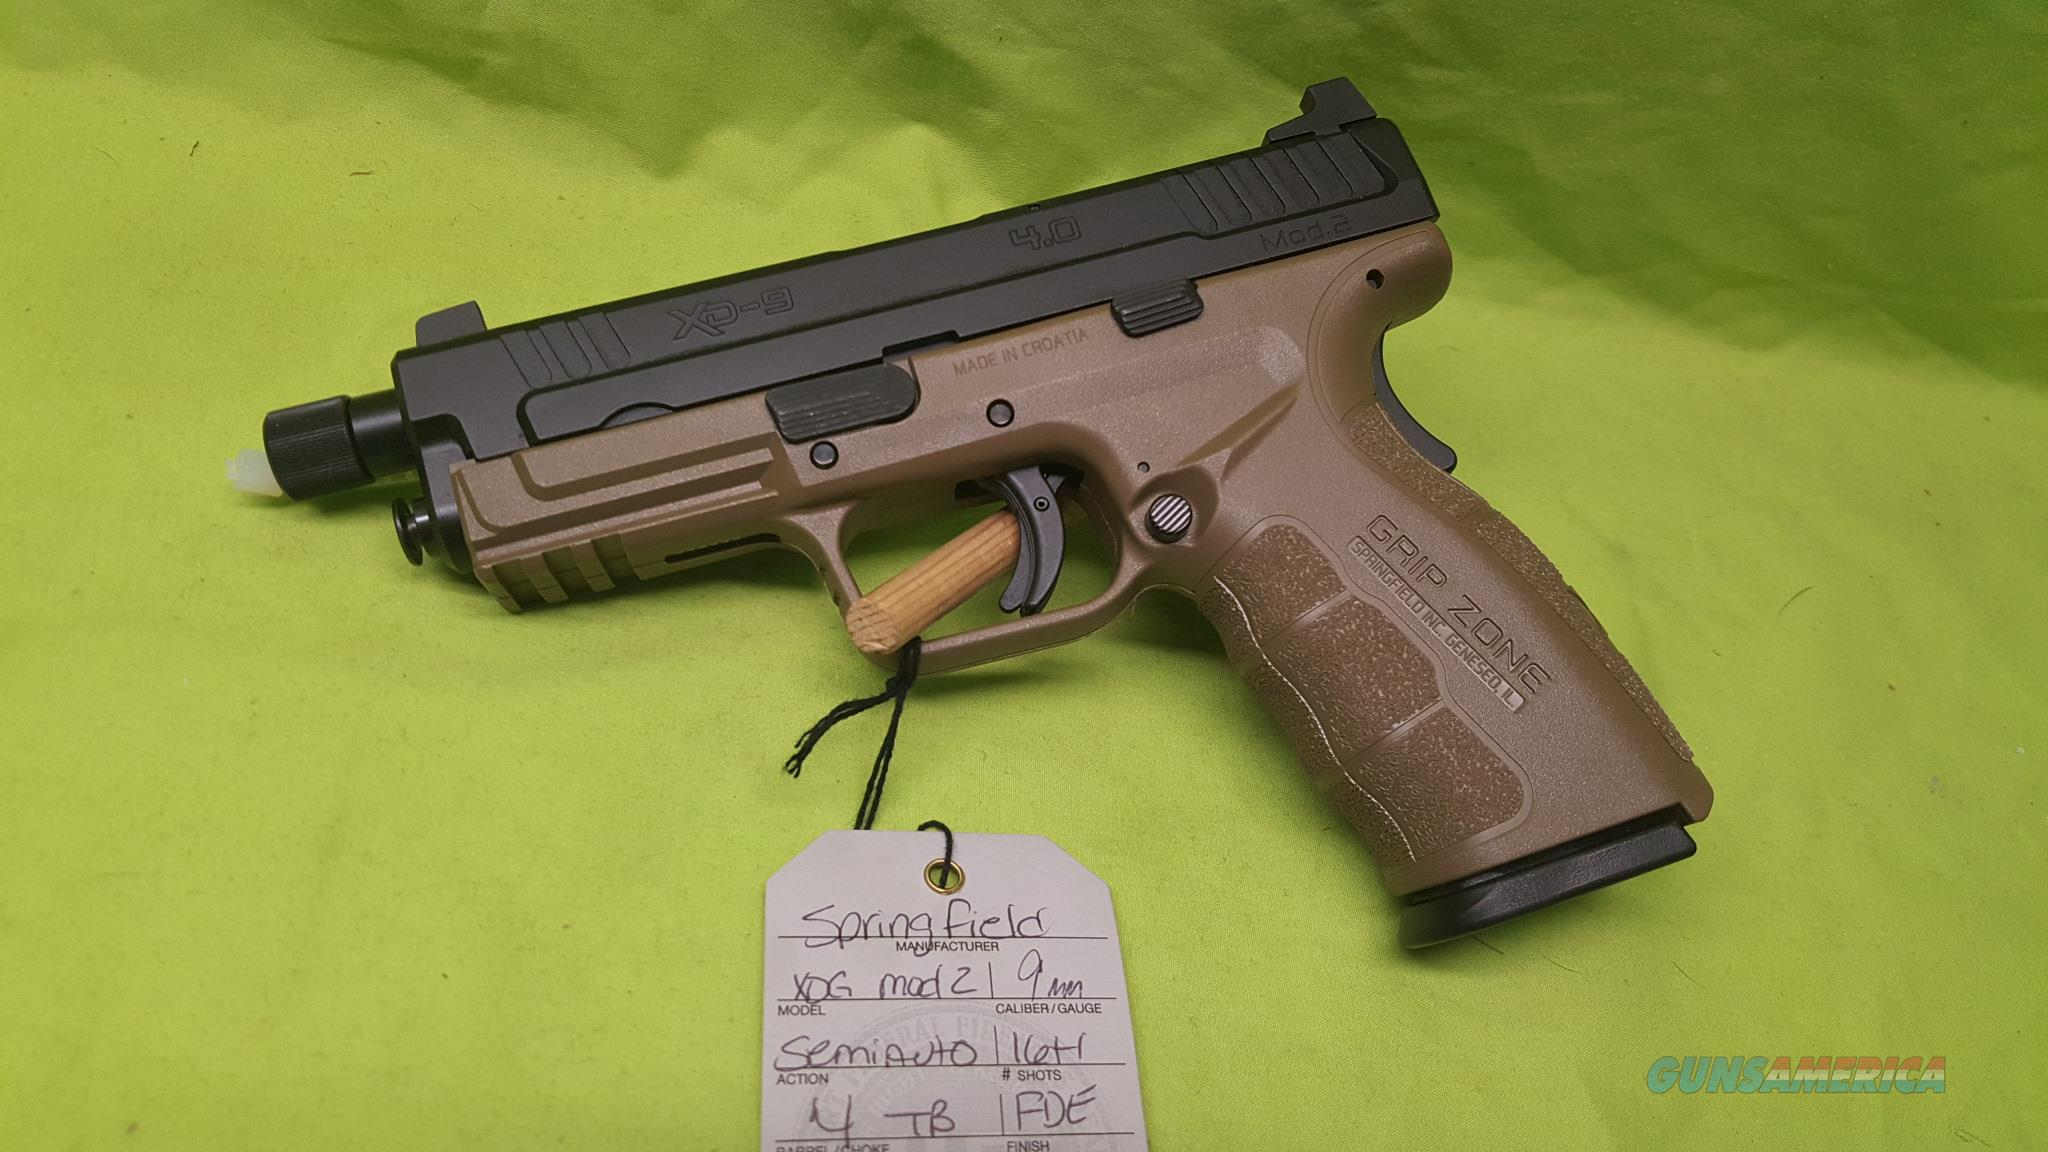 "SPRINGFIELD XD XDG MOD 2 9MM 4"" FDE 16RD THREADED  Guns > Pistols > Springfield Armory Pistols > XD (eXtreme Duty)"